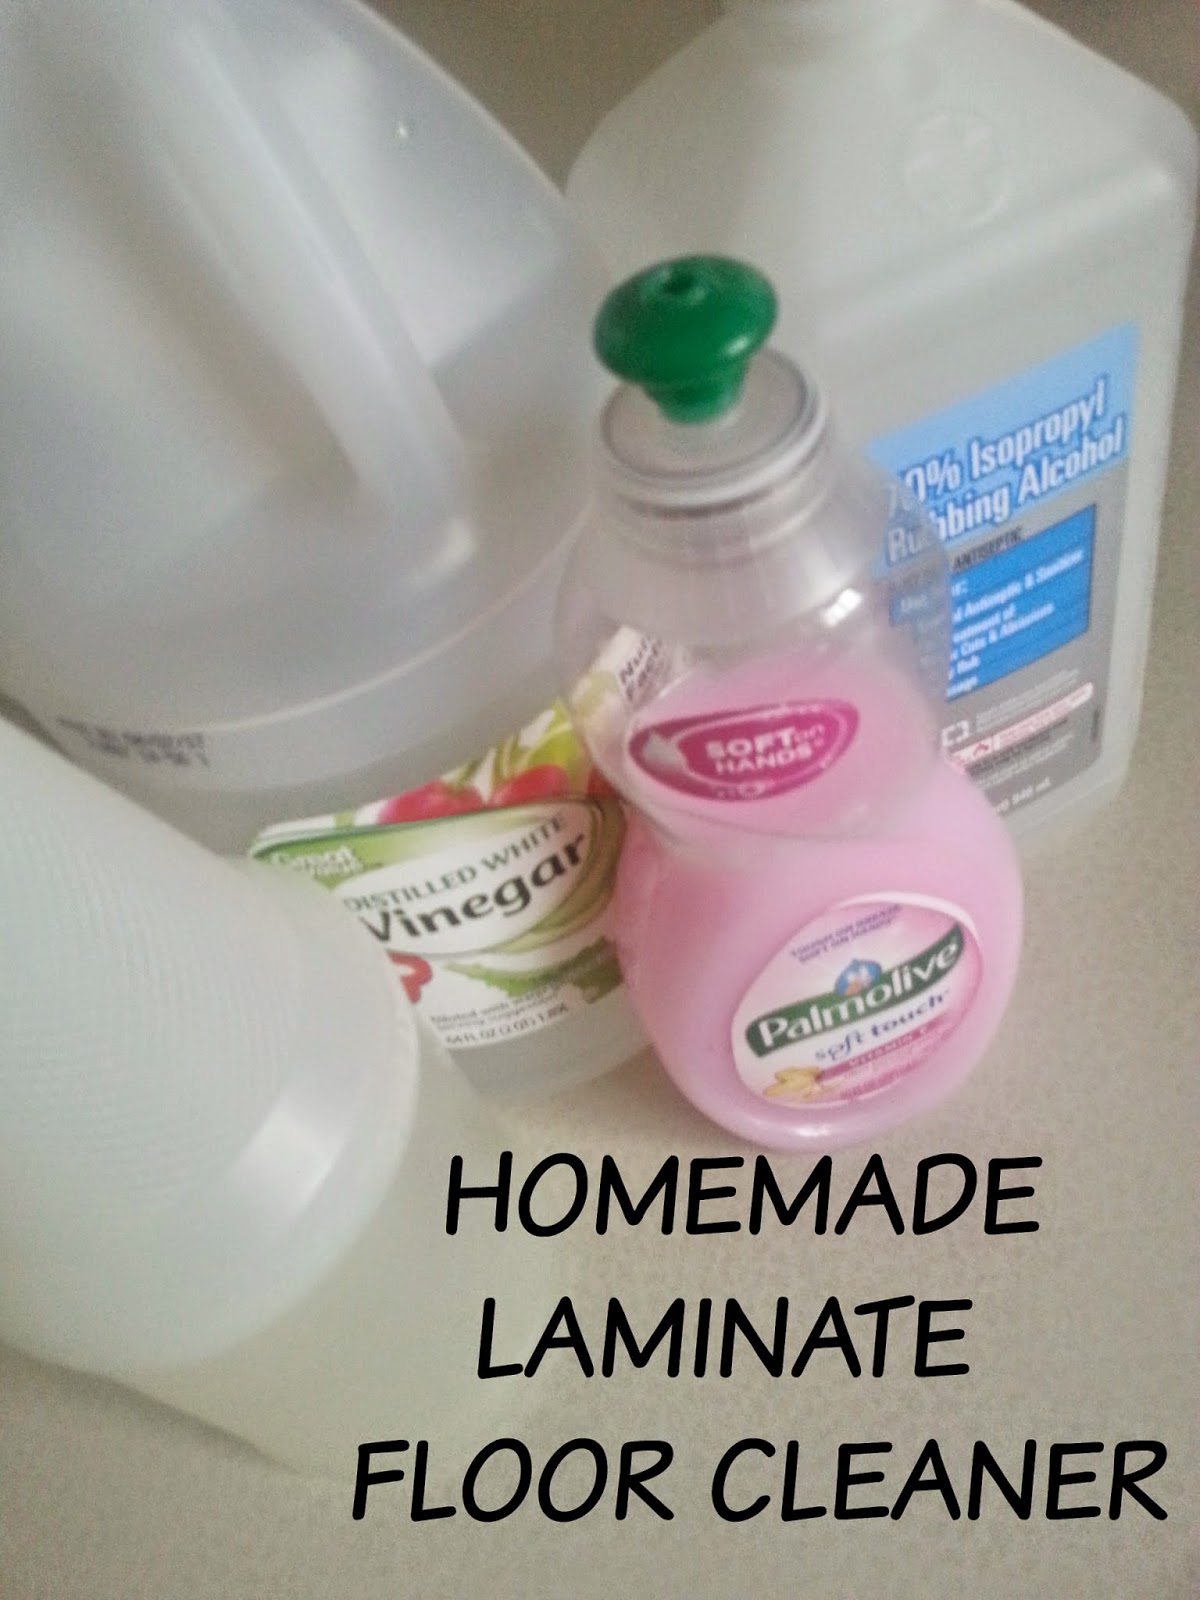 The better baker how to make a cake mix taste like a bakery cake - Make laminate floor cleaner ...